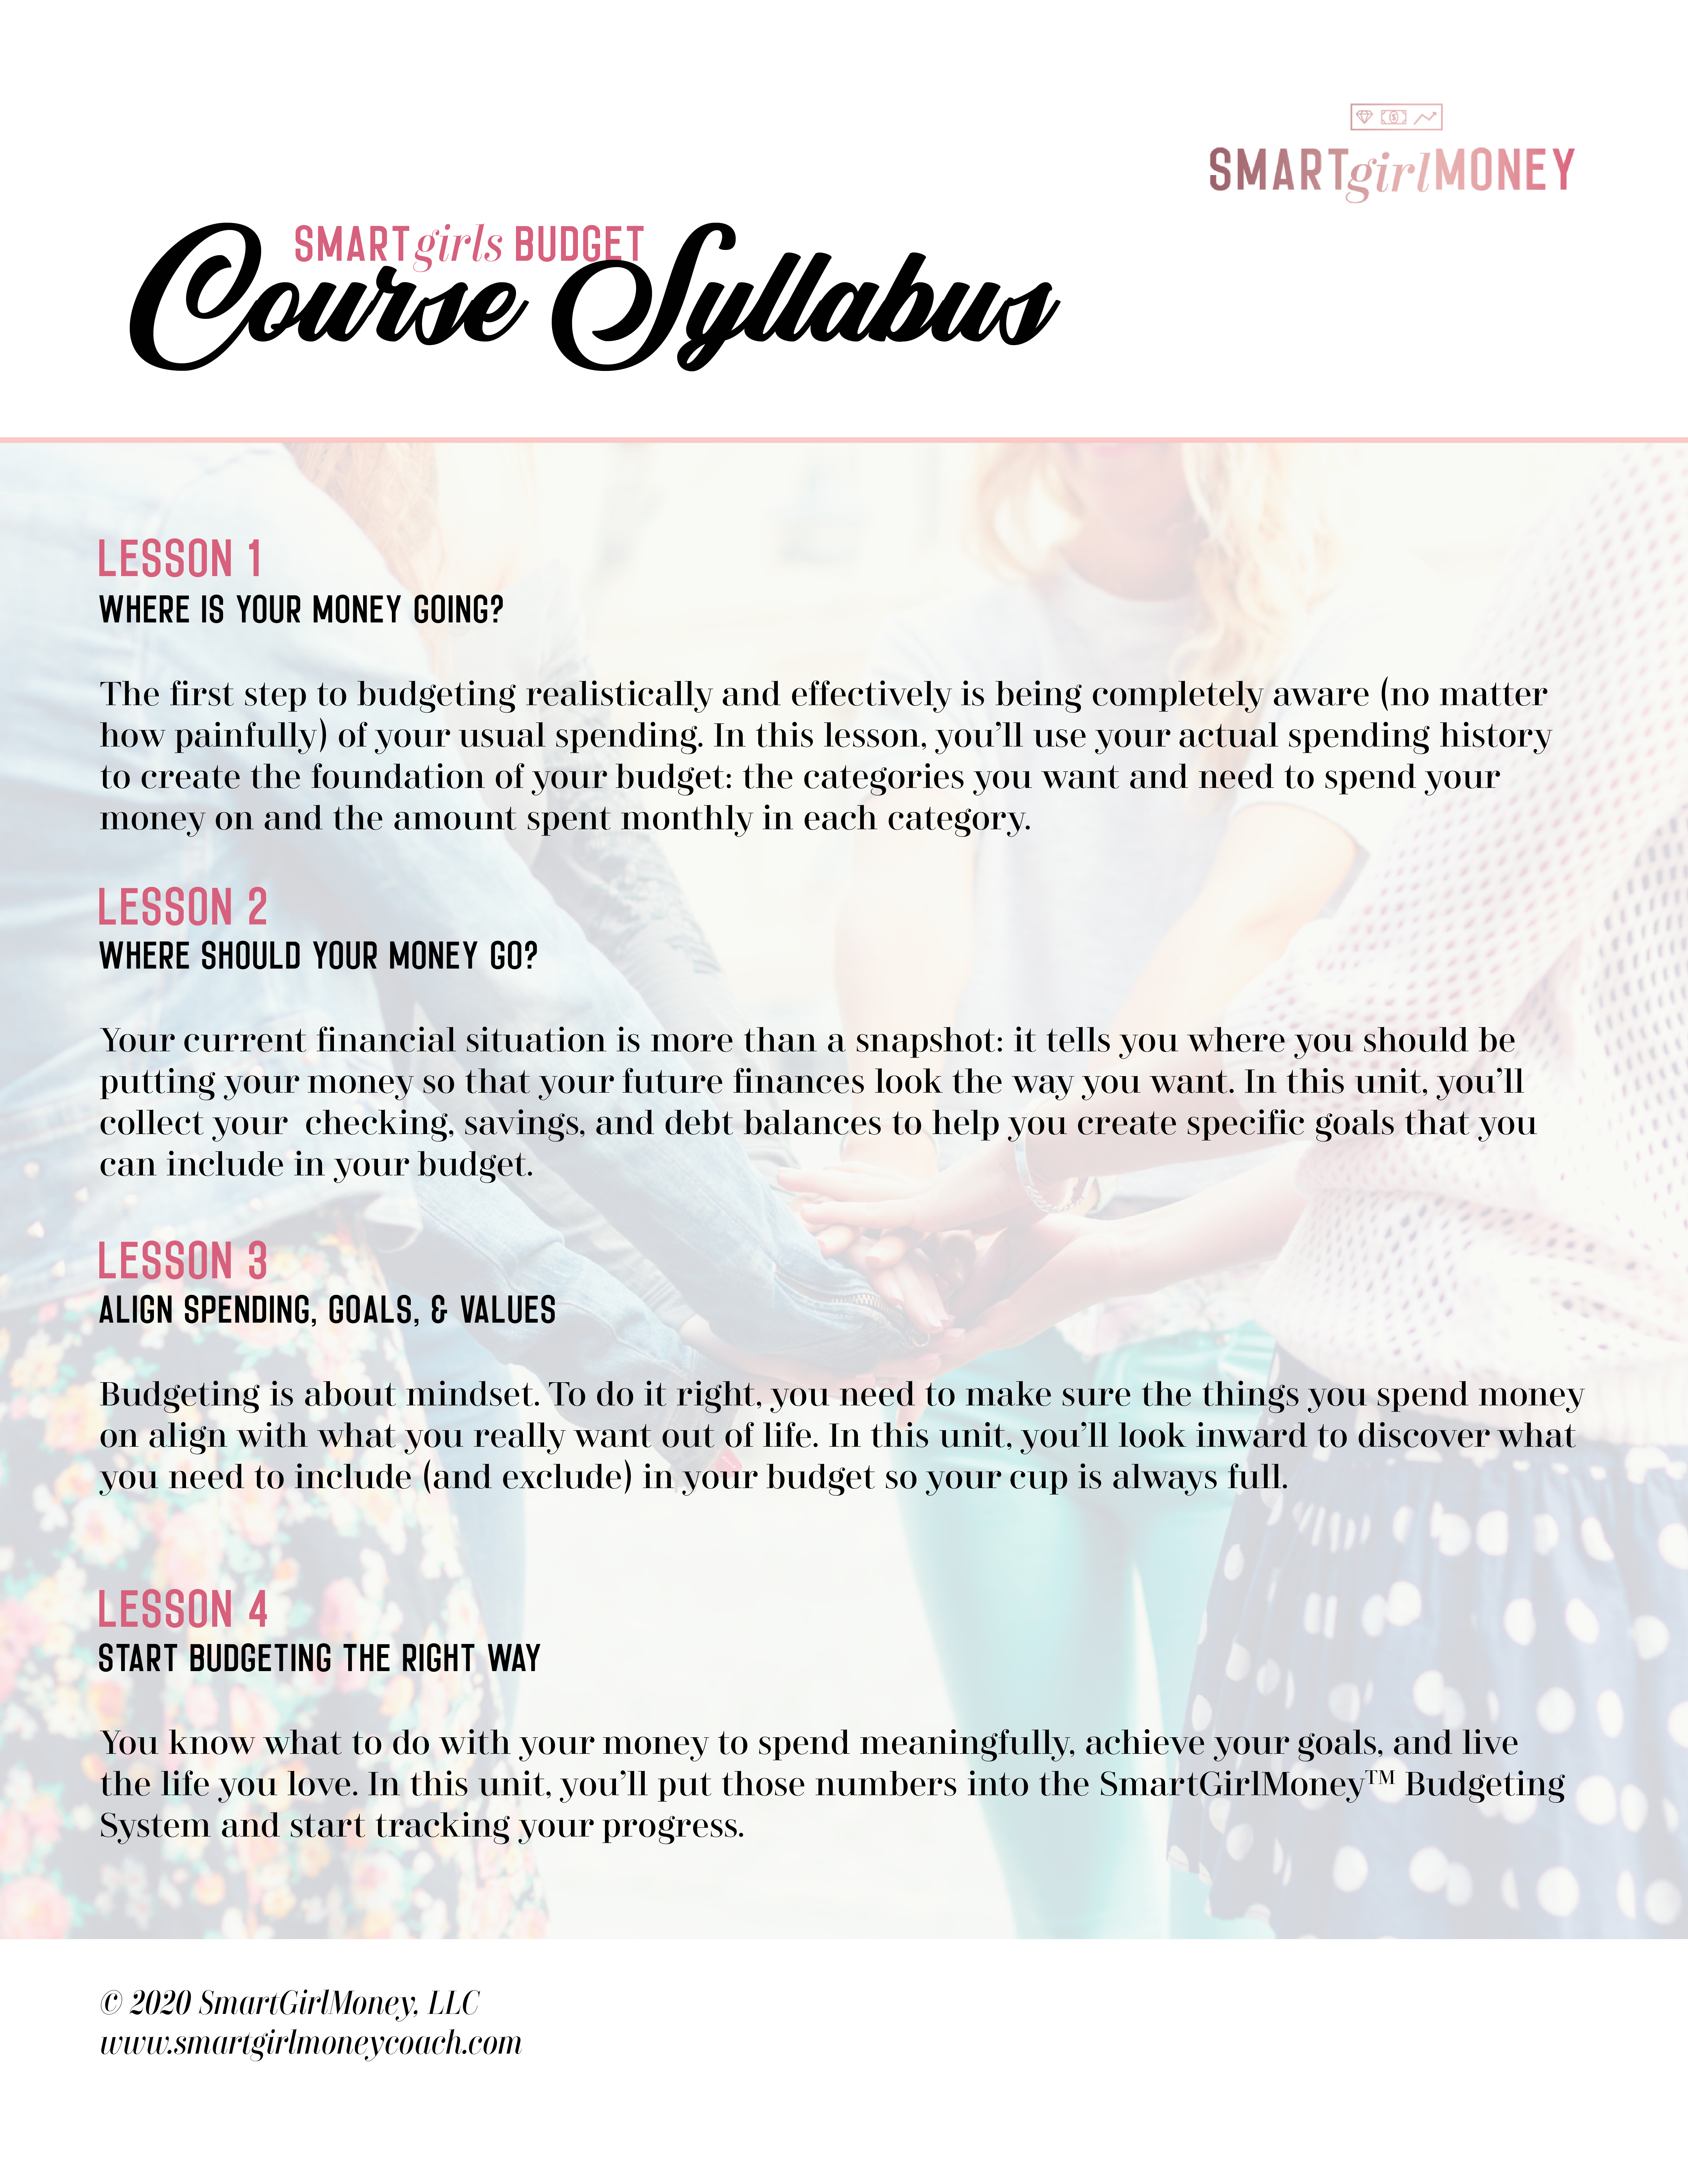 Course Syllabus for Smart Girls Budget